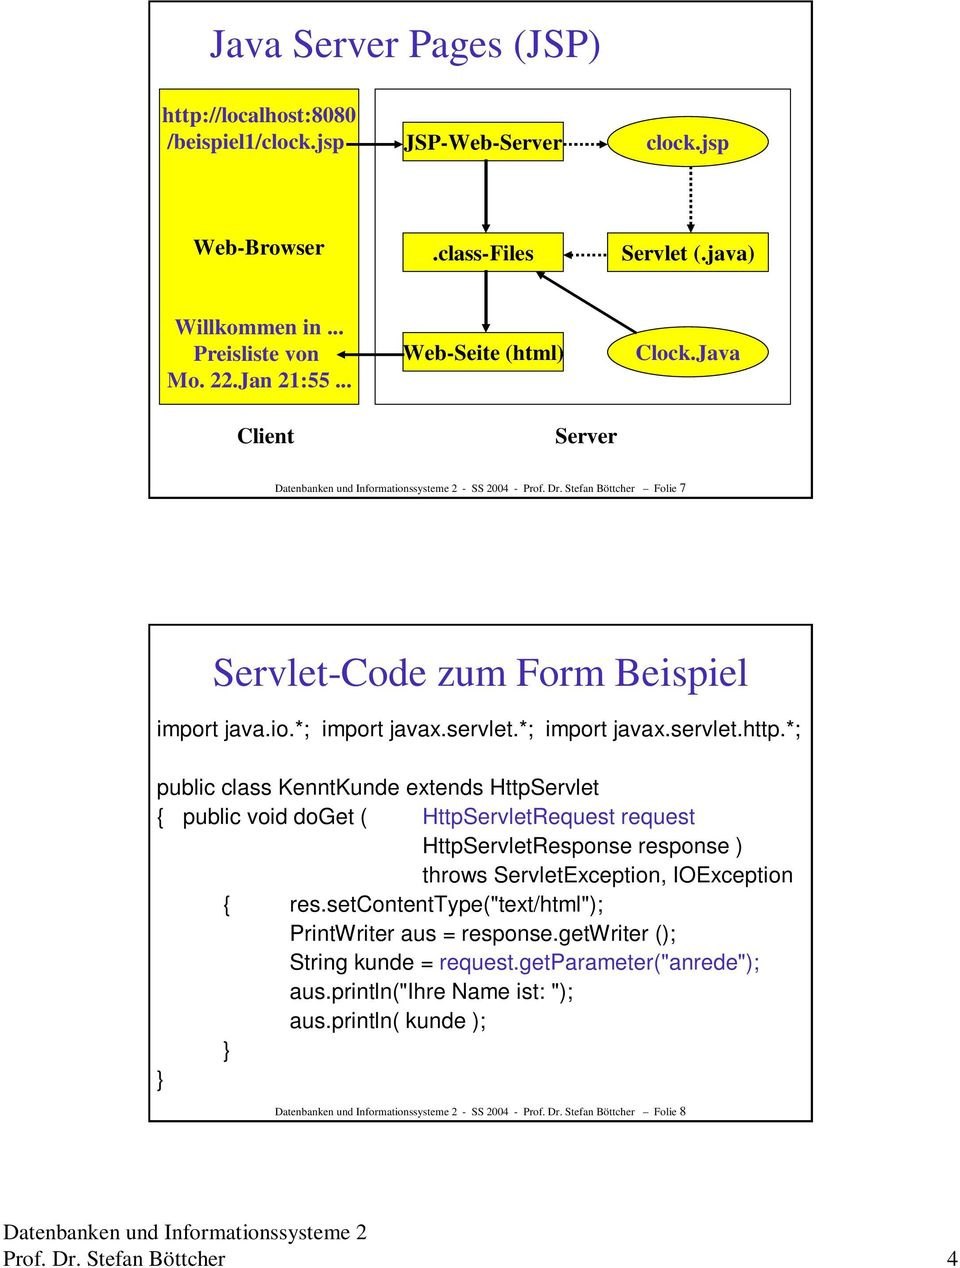 *; public class KenntKunde extends HttpServlet { public void doget ( HttpServletRequest request, HttpServletResponse response ) throws ServletException, IOException { res.